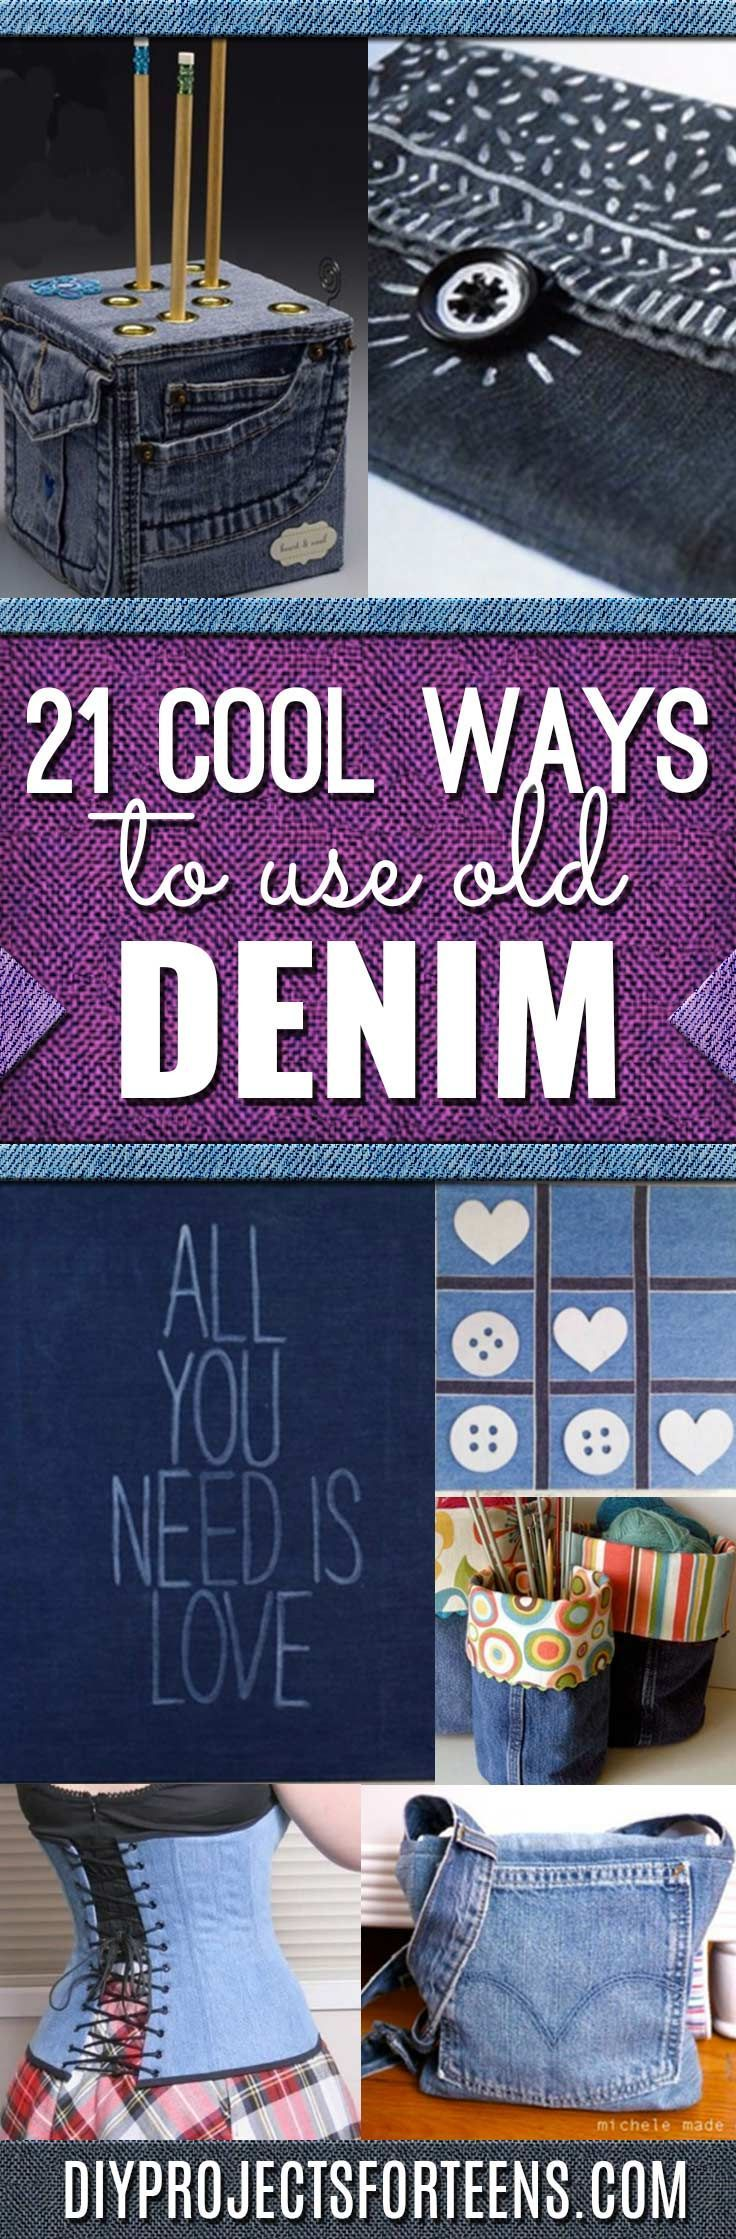 Sewing crafts for teens - 21 Awesome Ways To Use Old Denim Jeans Fun Crafts For Teensdiy